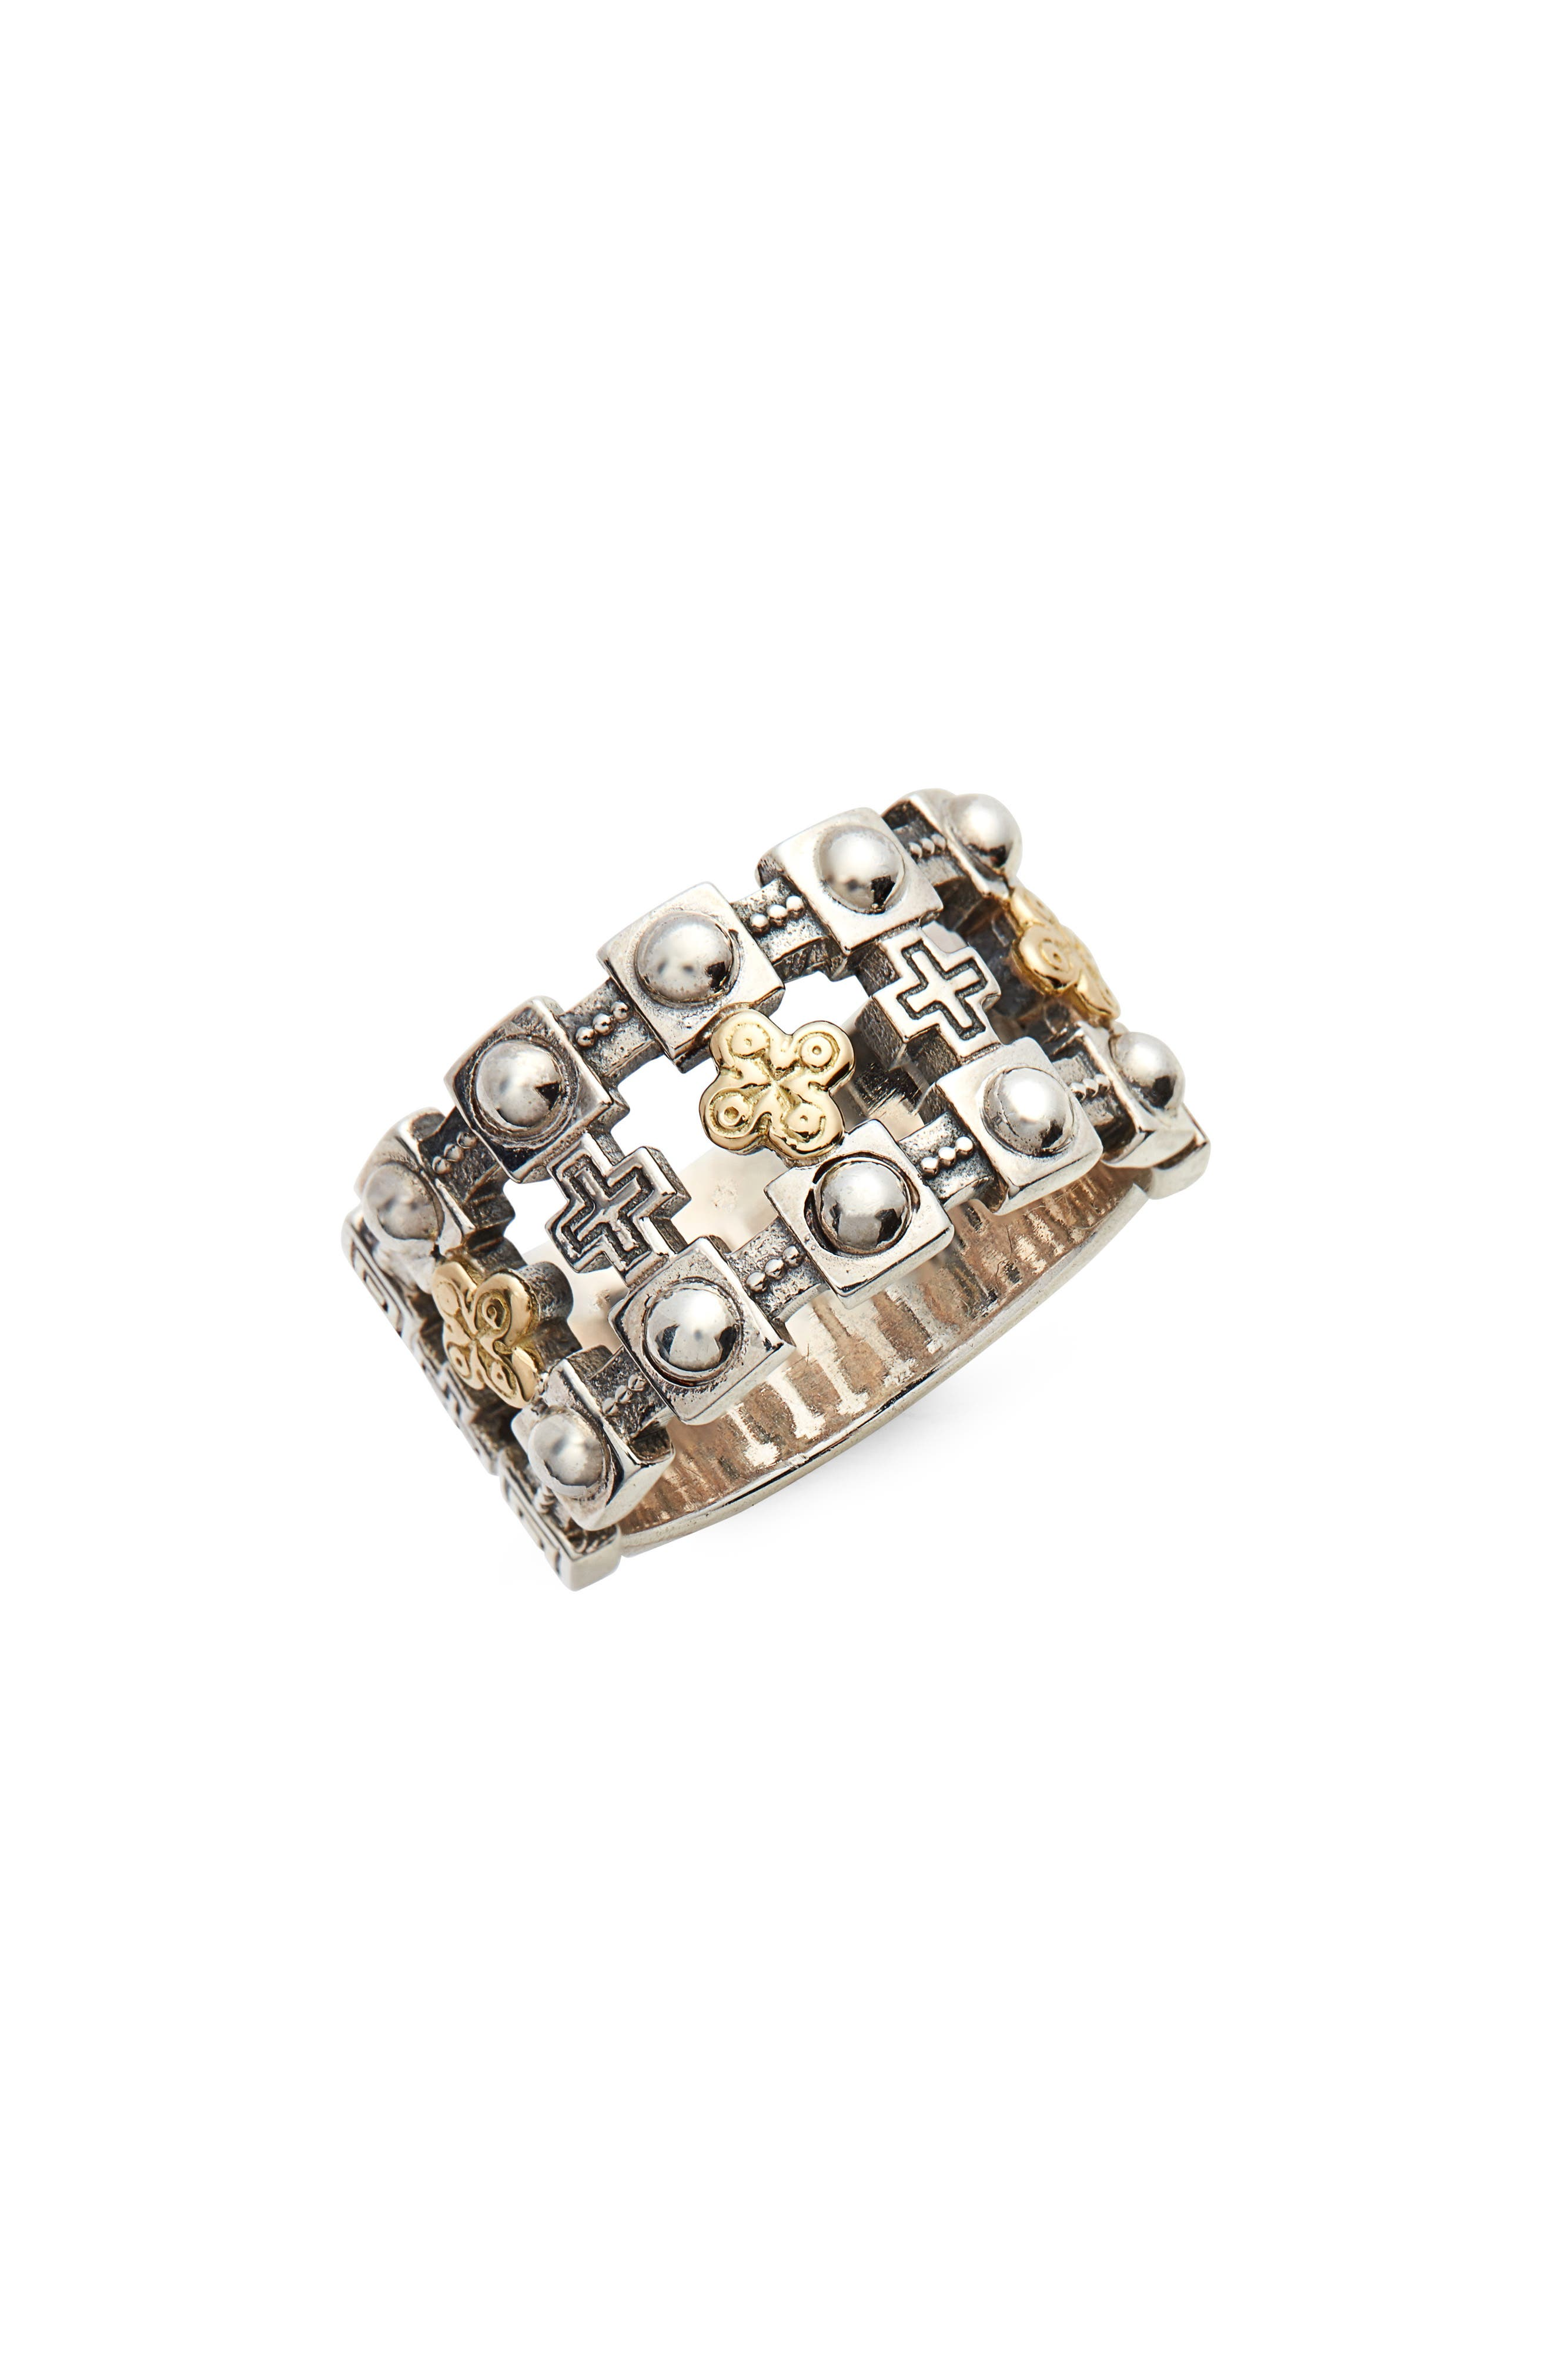 Stavros Openwork Ring,                         Main,                         color, SILVER/ GOLD